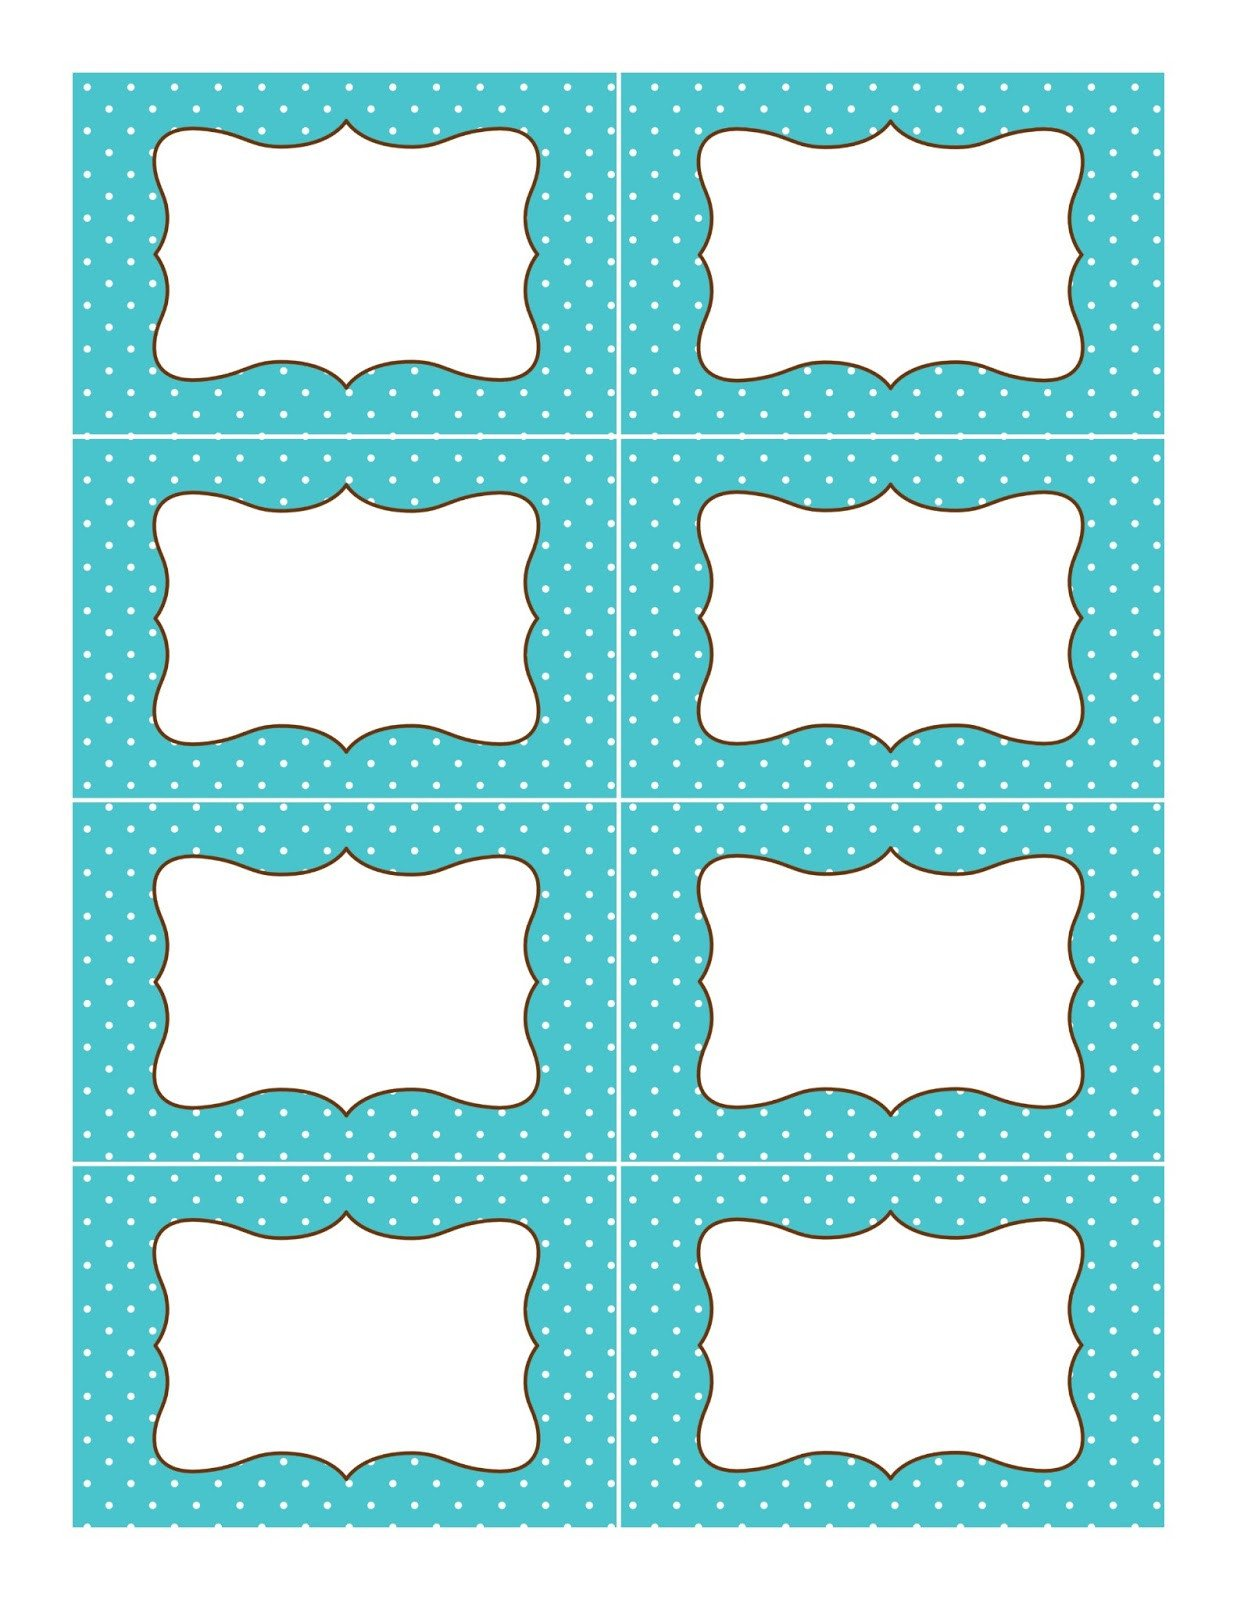 Free Printable Labels Template 1000 Ideas About Polka Dot Labels On Pinterest